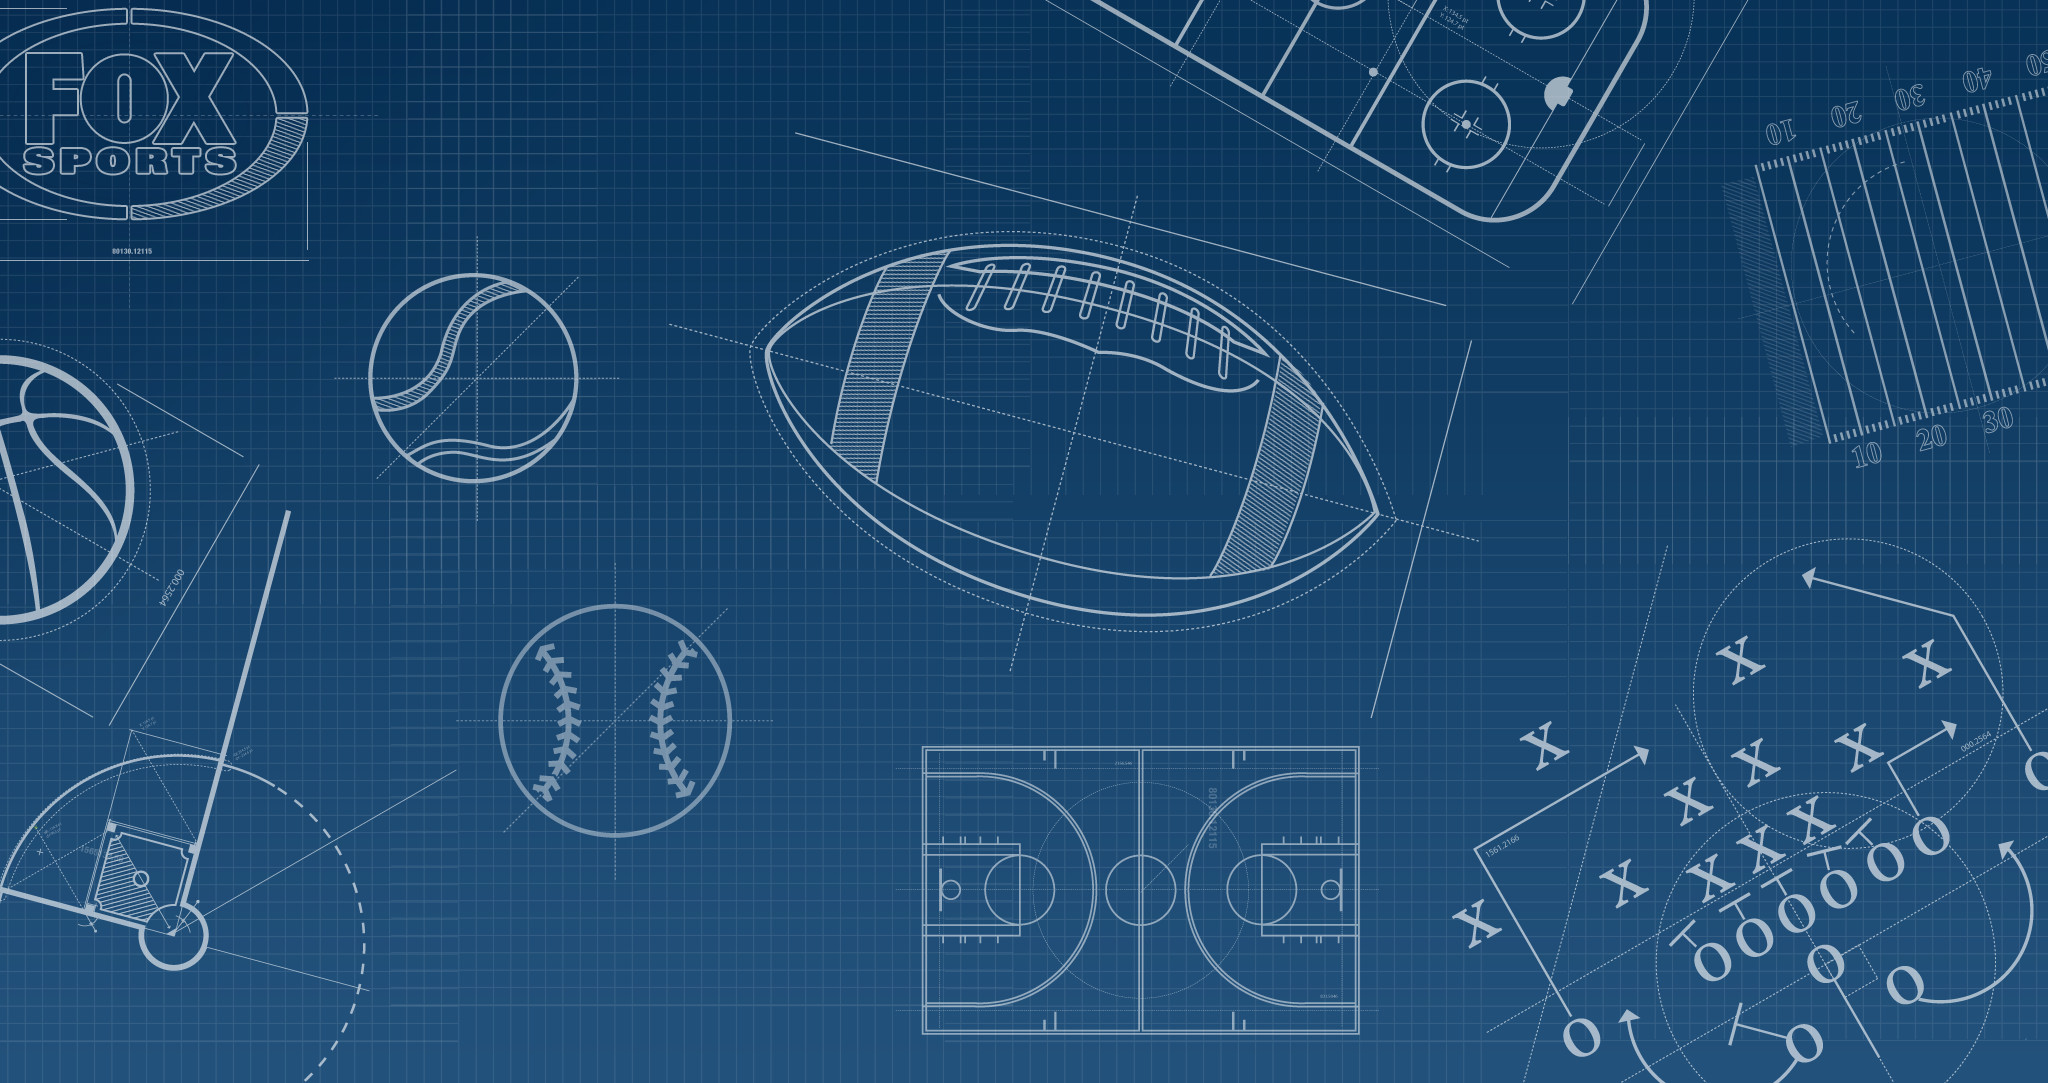 Sports background images 43 images 1920x1200 sports logo hd backgrounds voltagebd Gallery